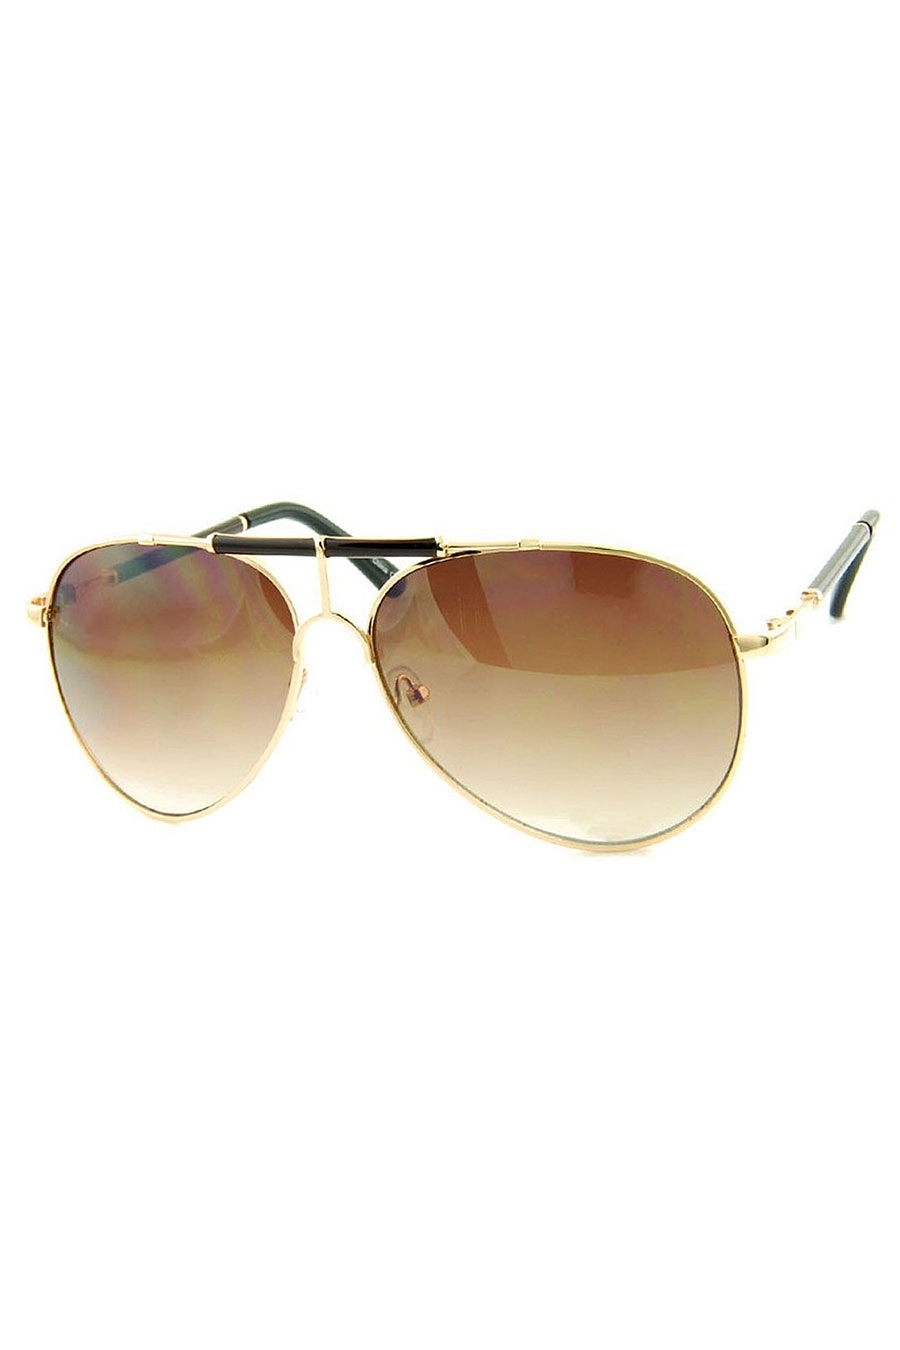 METAL BRIDGE SUNGLASSES - orangeshine.com